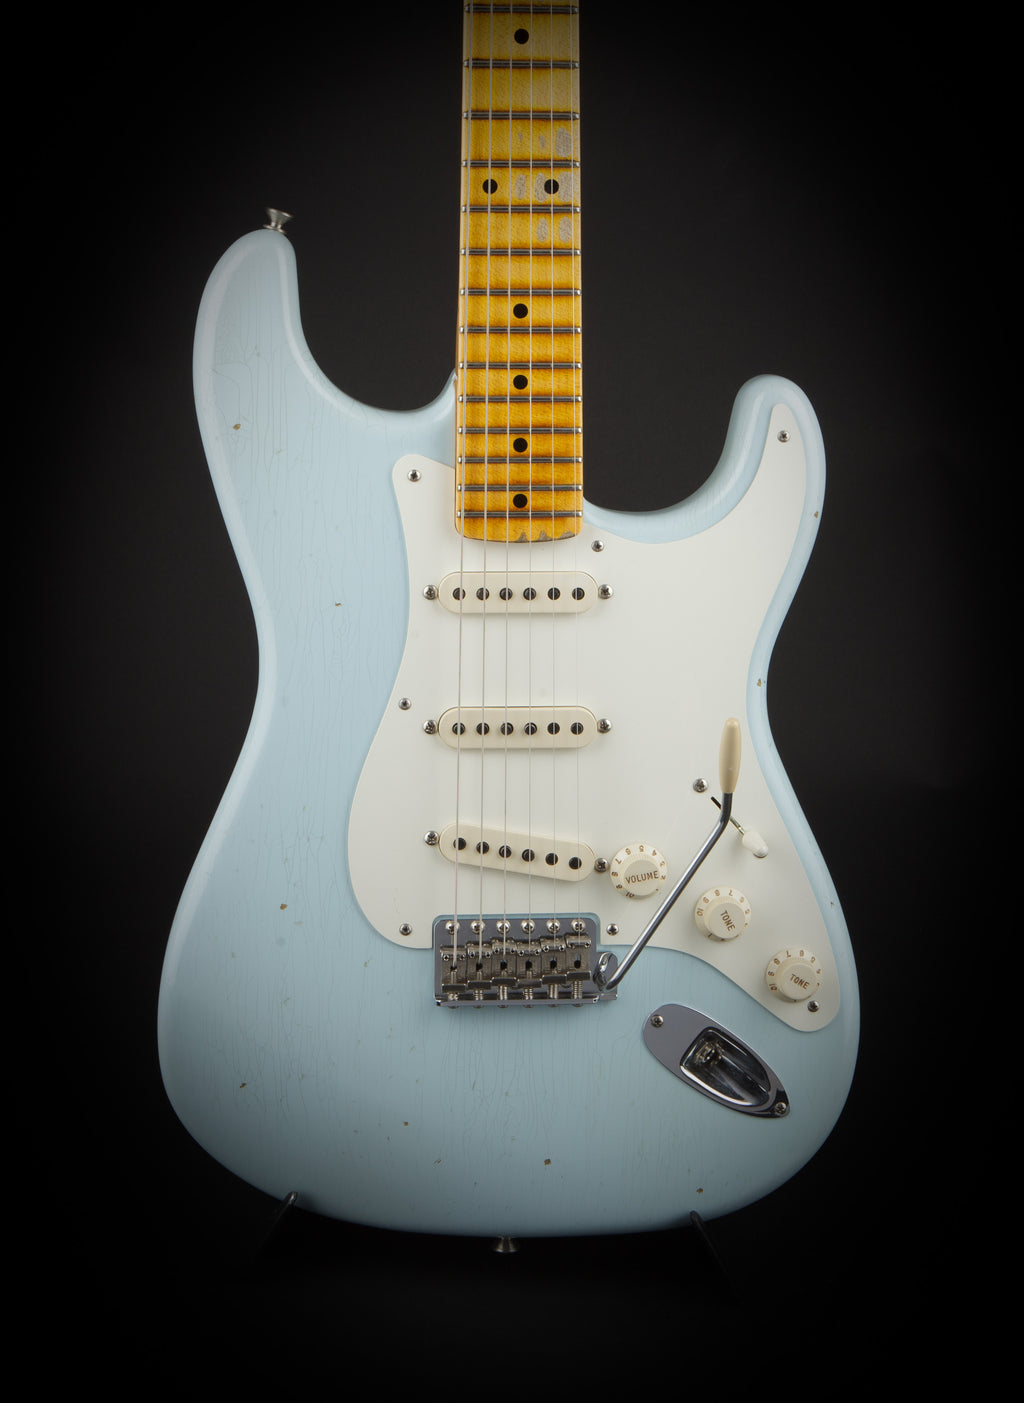 Fender Custom Shop: 55 Stratocaster Sonic Blue #R92809